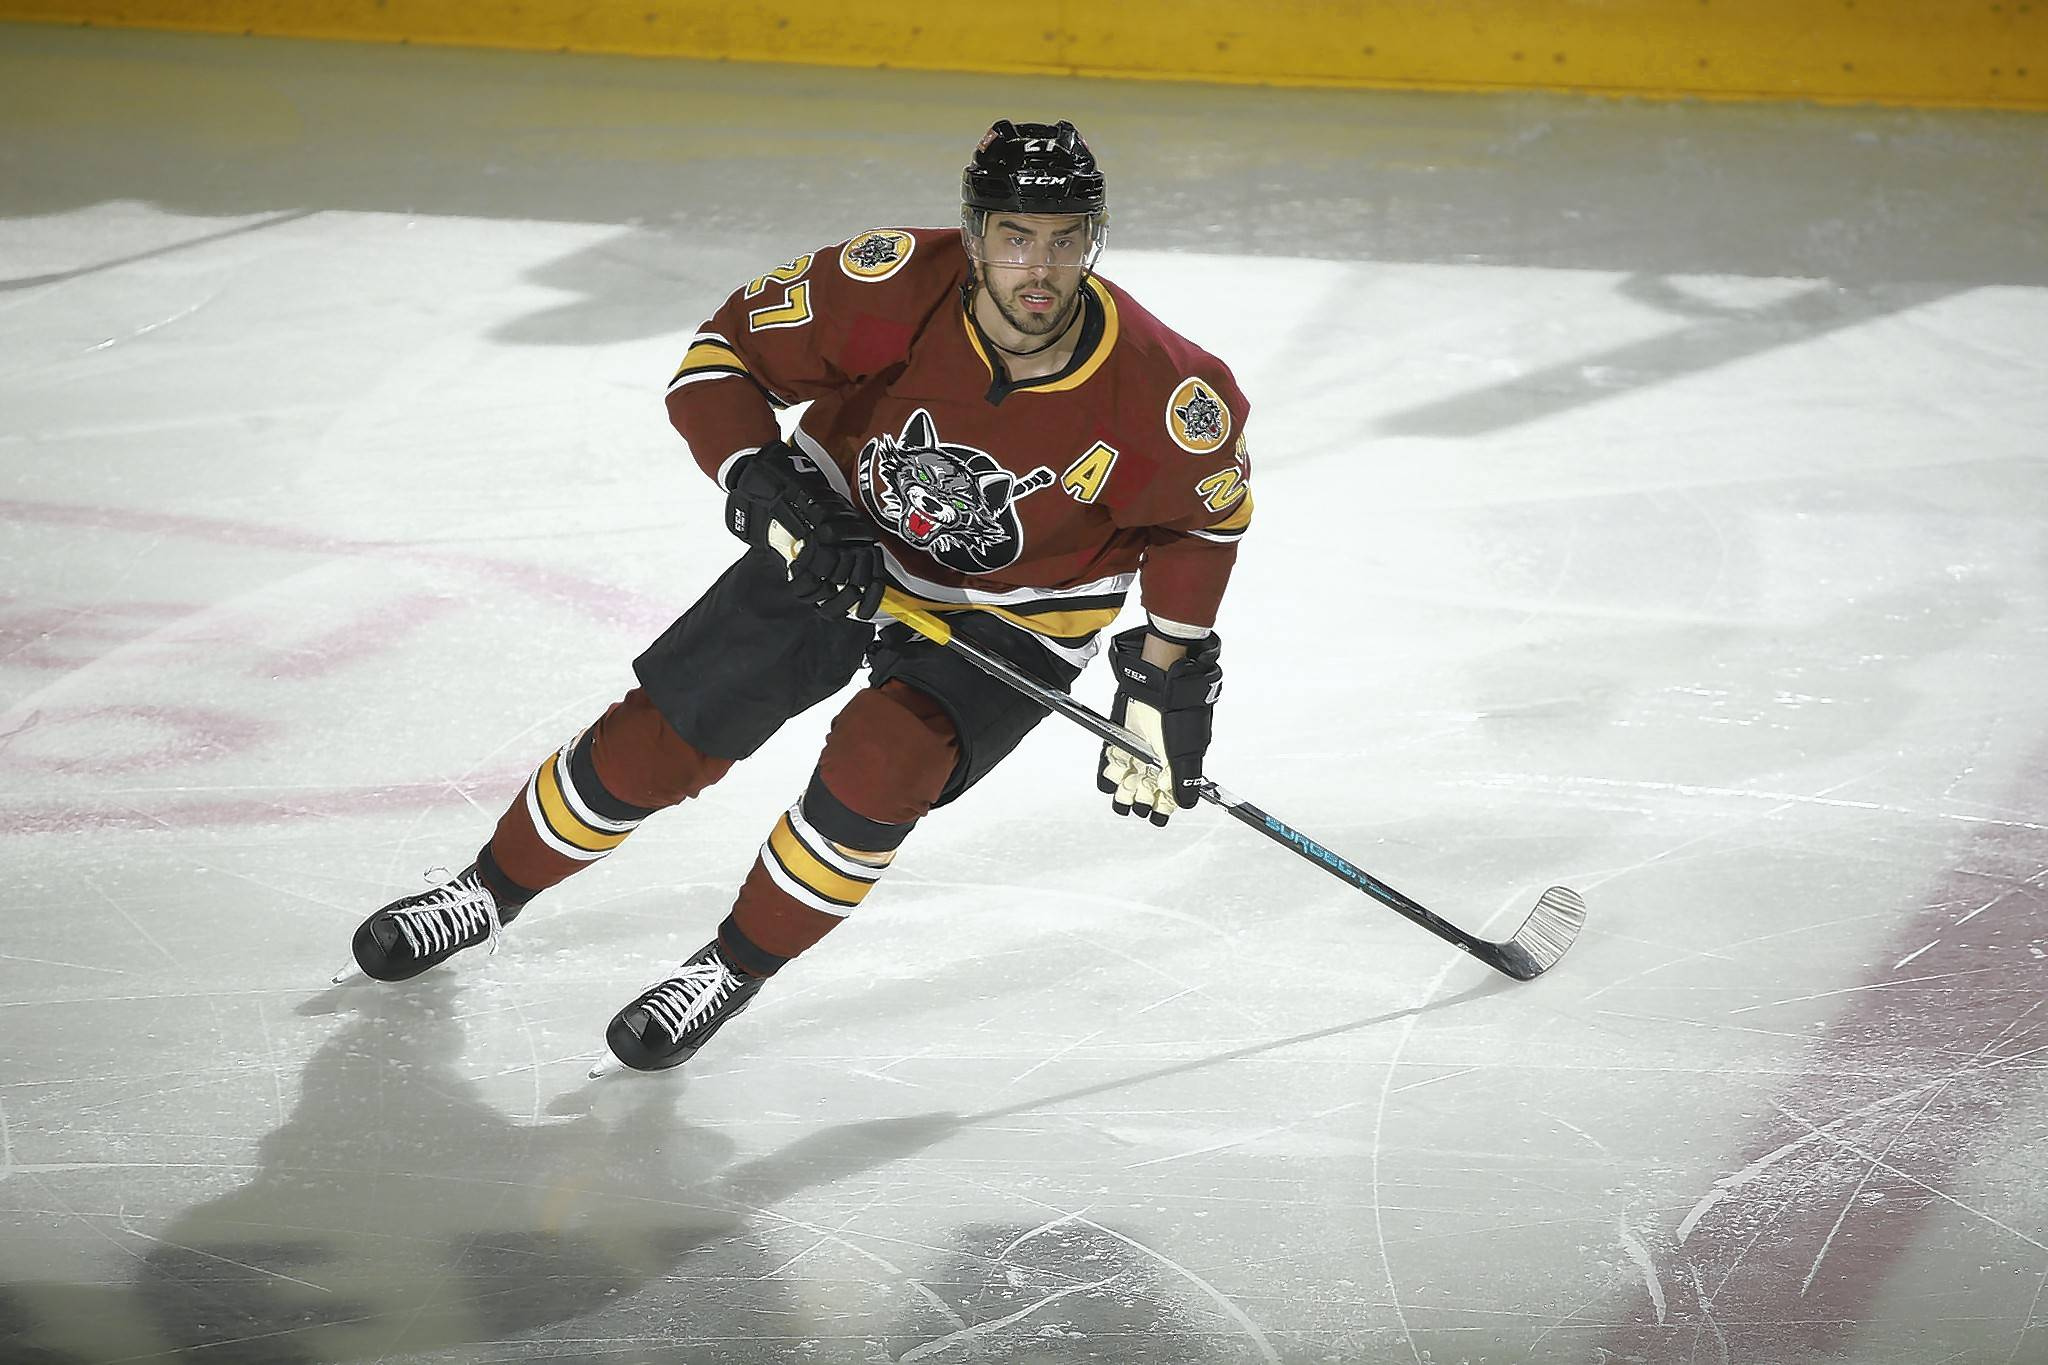 "The Chicago Wolves used a team meeting to help turn their season around after a wretched start. Led by captain Paul Thompson, alternate captains Brandon Pirri (above) and T.J. Tynan, 33-year-old defenseman Jason Garrison and others spoke up and delivered a message that helped turn around the season. ""It wasn't pointing guys out,"" said Pirri, who ended up sharing the team lead with 29 goals."